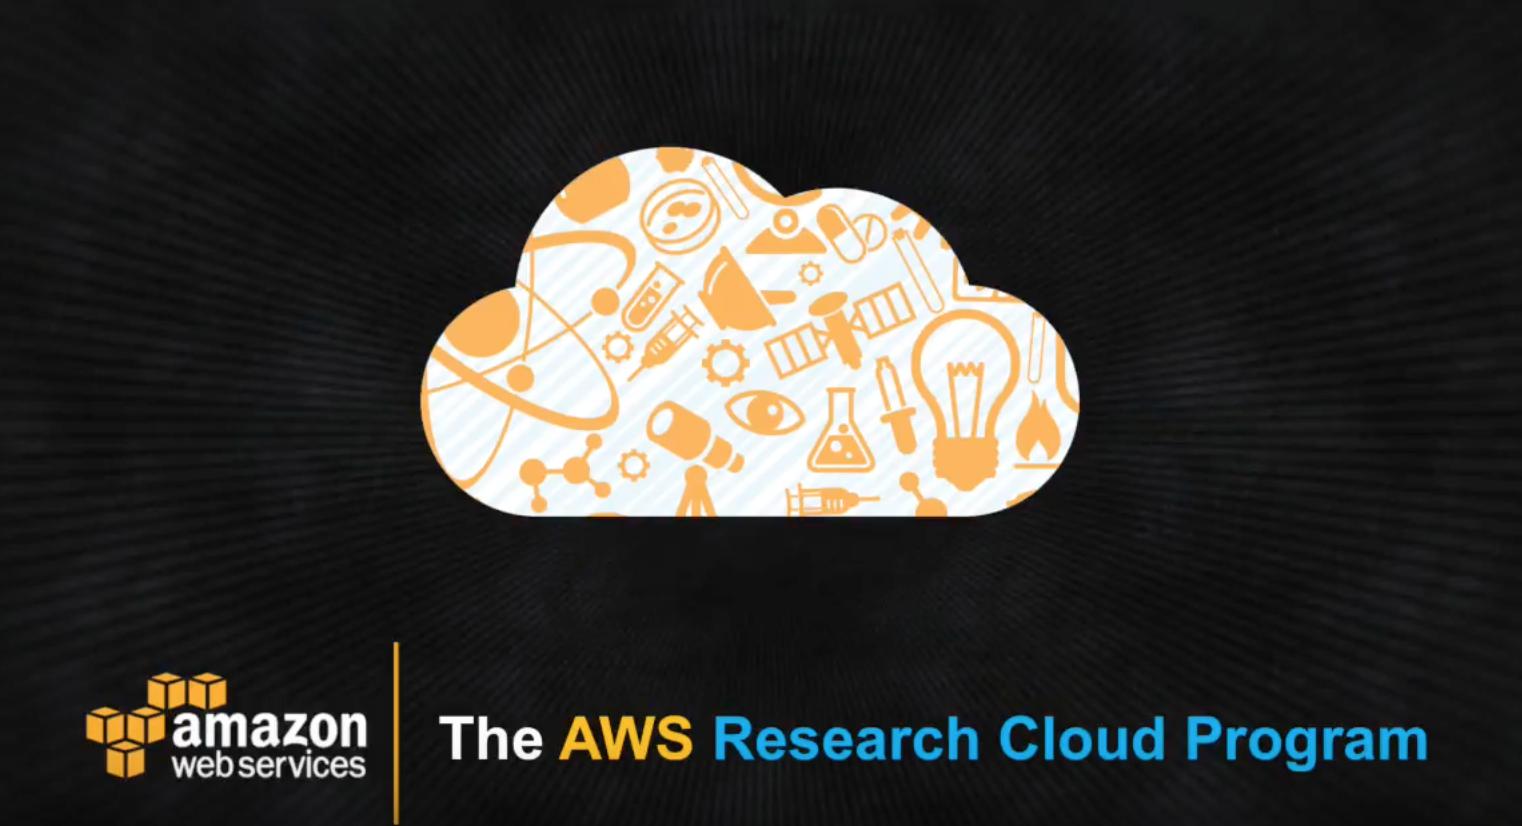 AWS RCP - AWS Research Cloud Program